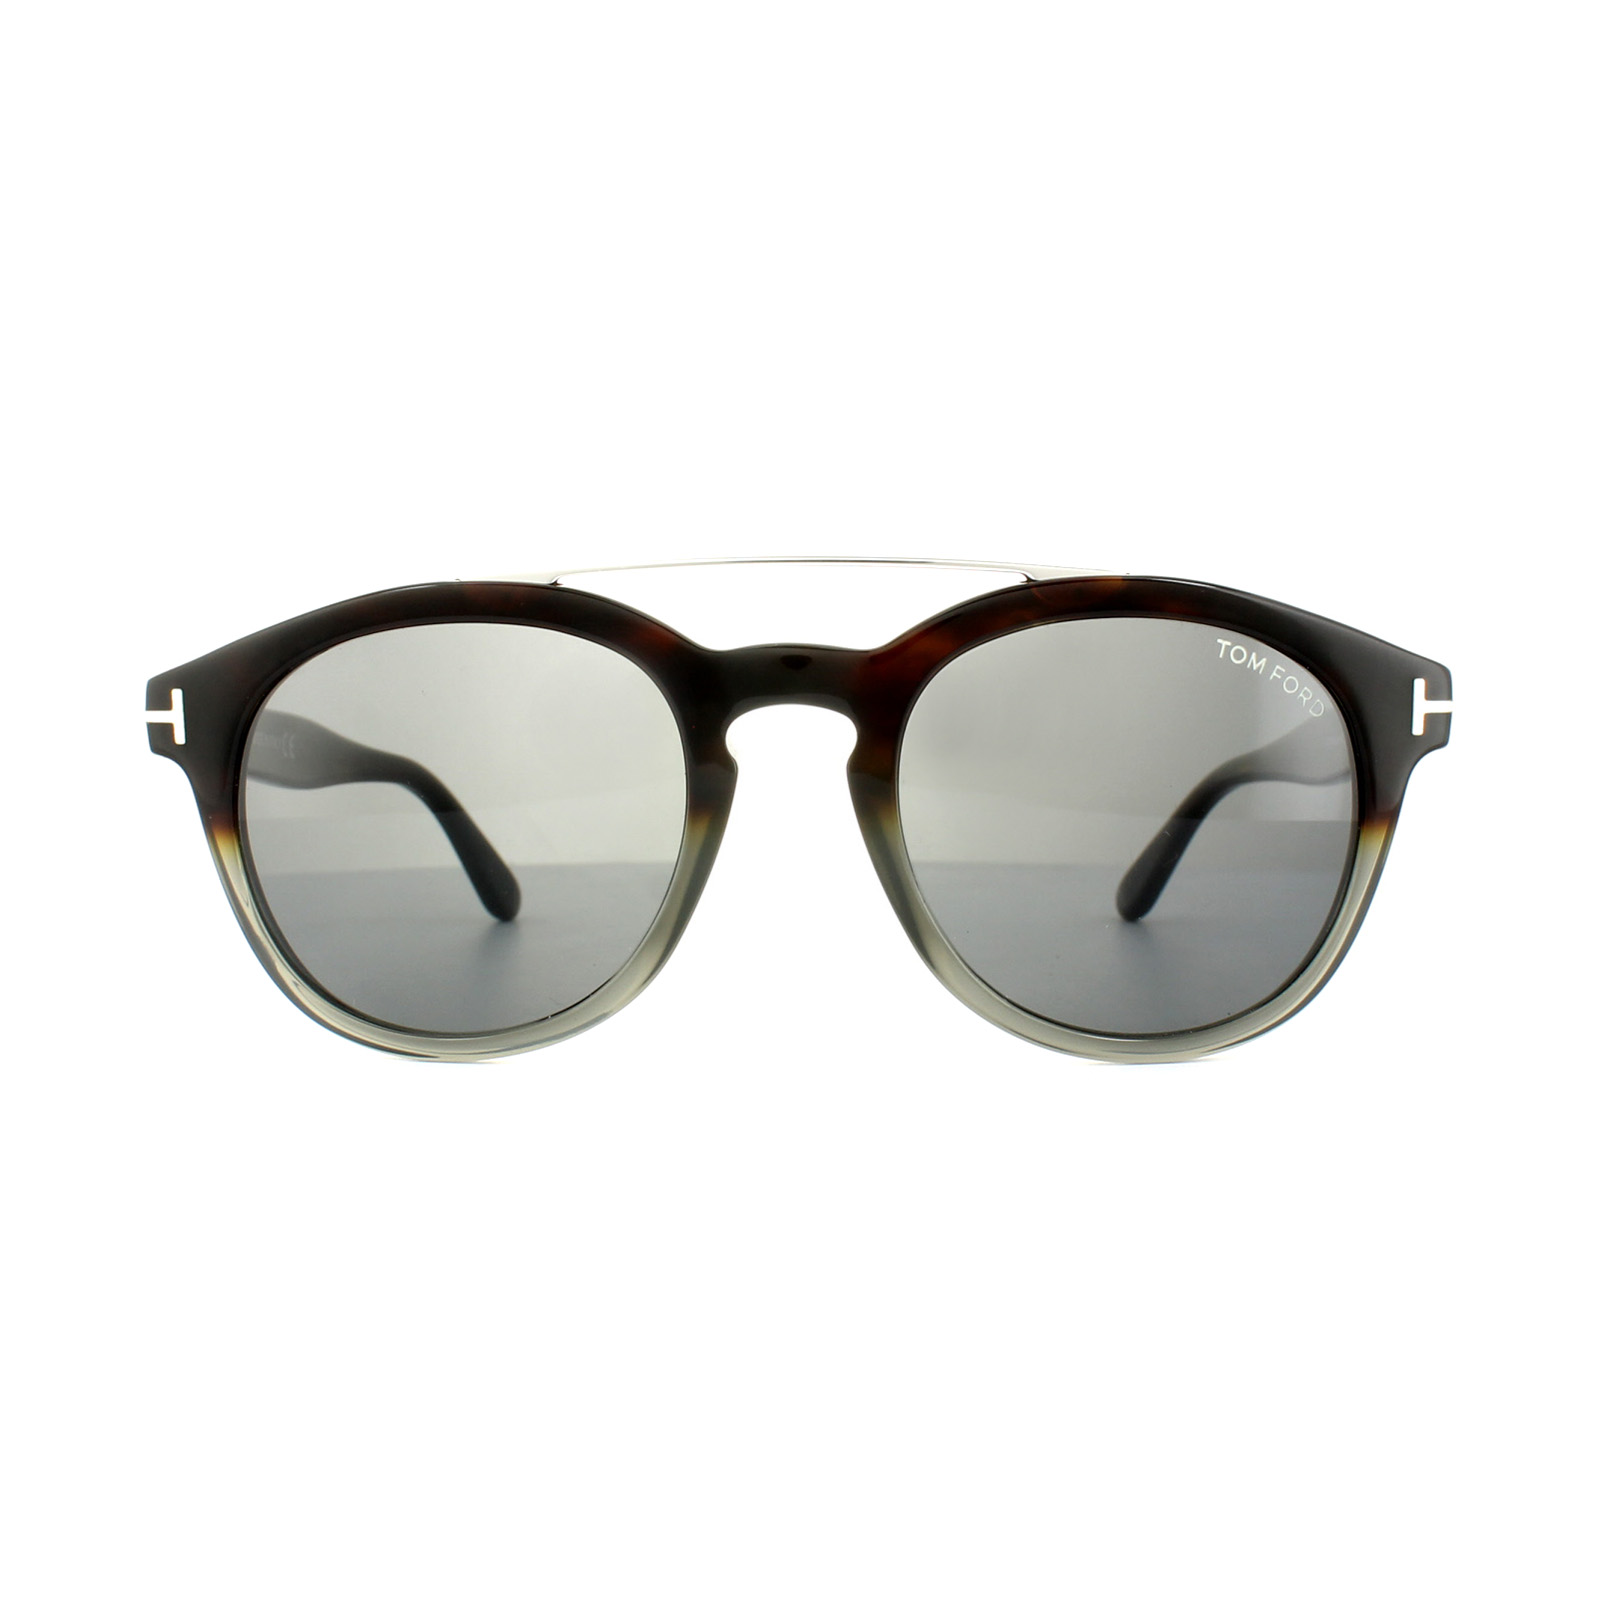 Sentinel Tom Ford Sunglasses 0515 Newman 56A Dark Havana Fade Grey 245a5b6f7f95